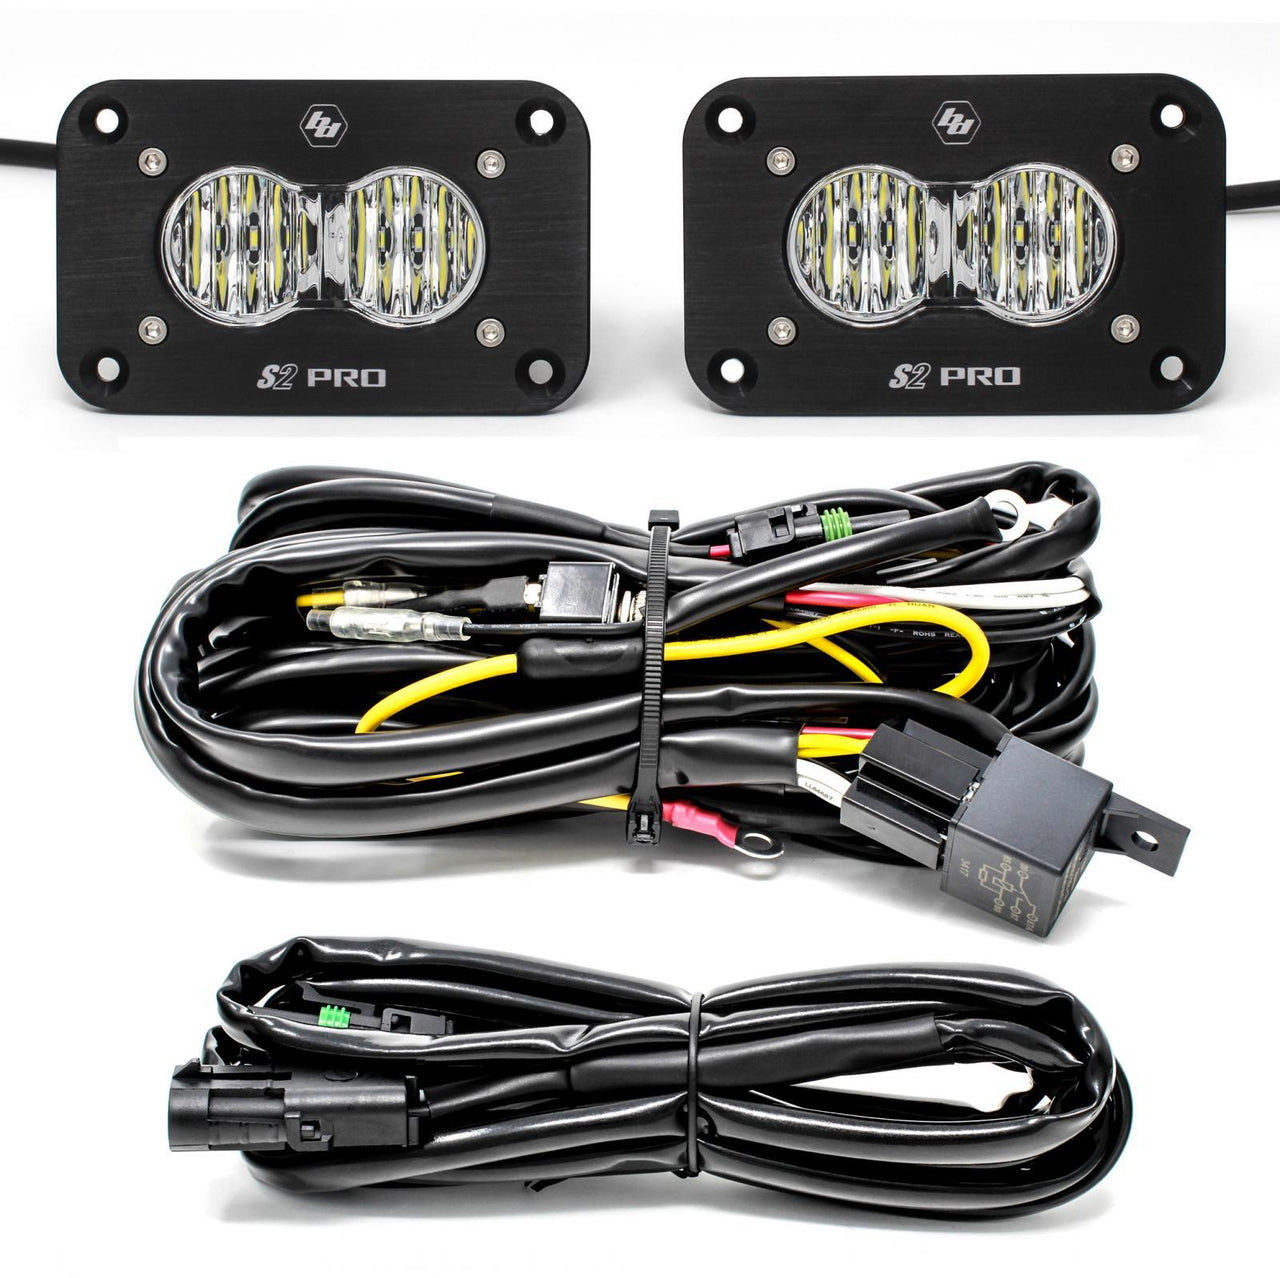 Flush Mount LED Light Pod Kit Wide Cornering Pair S2 Pro Baja Designs